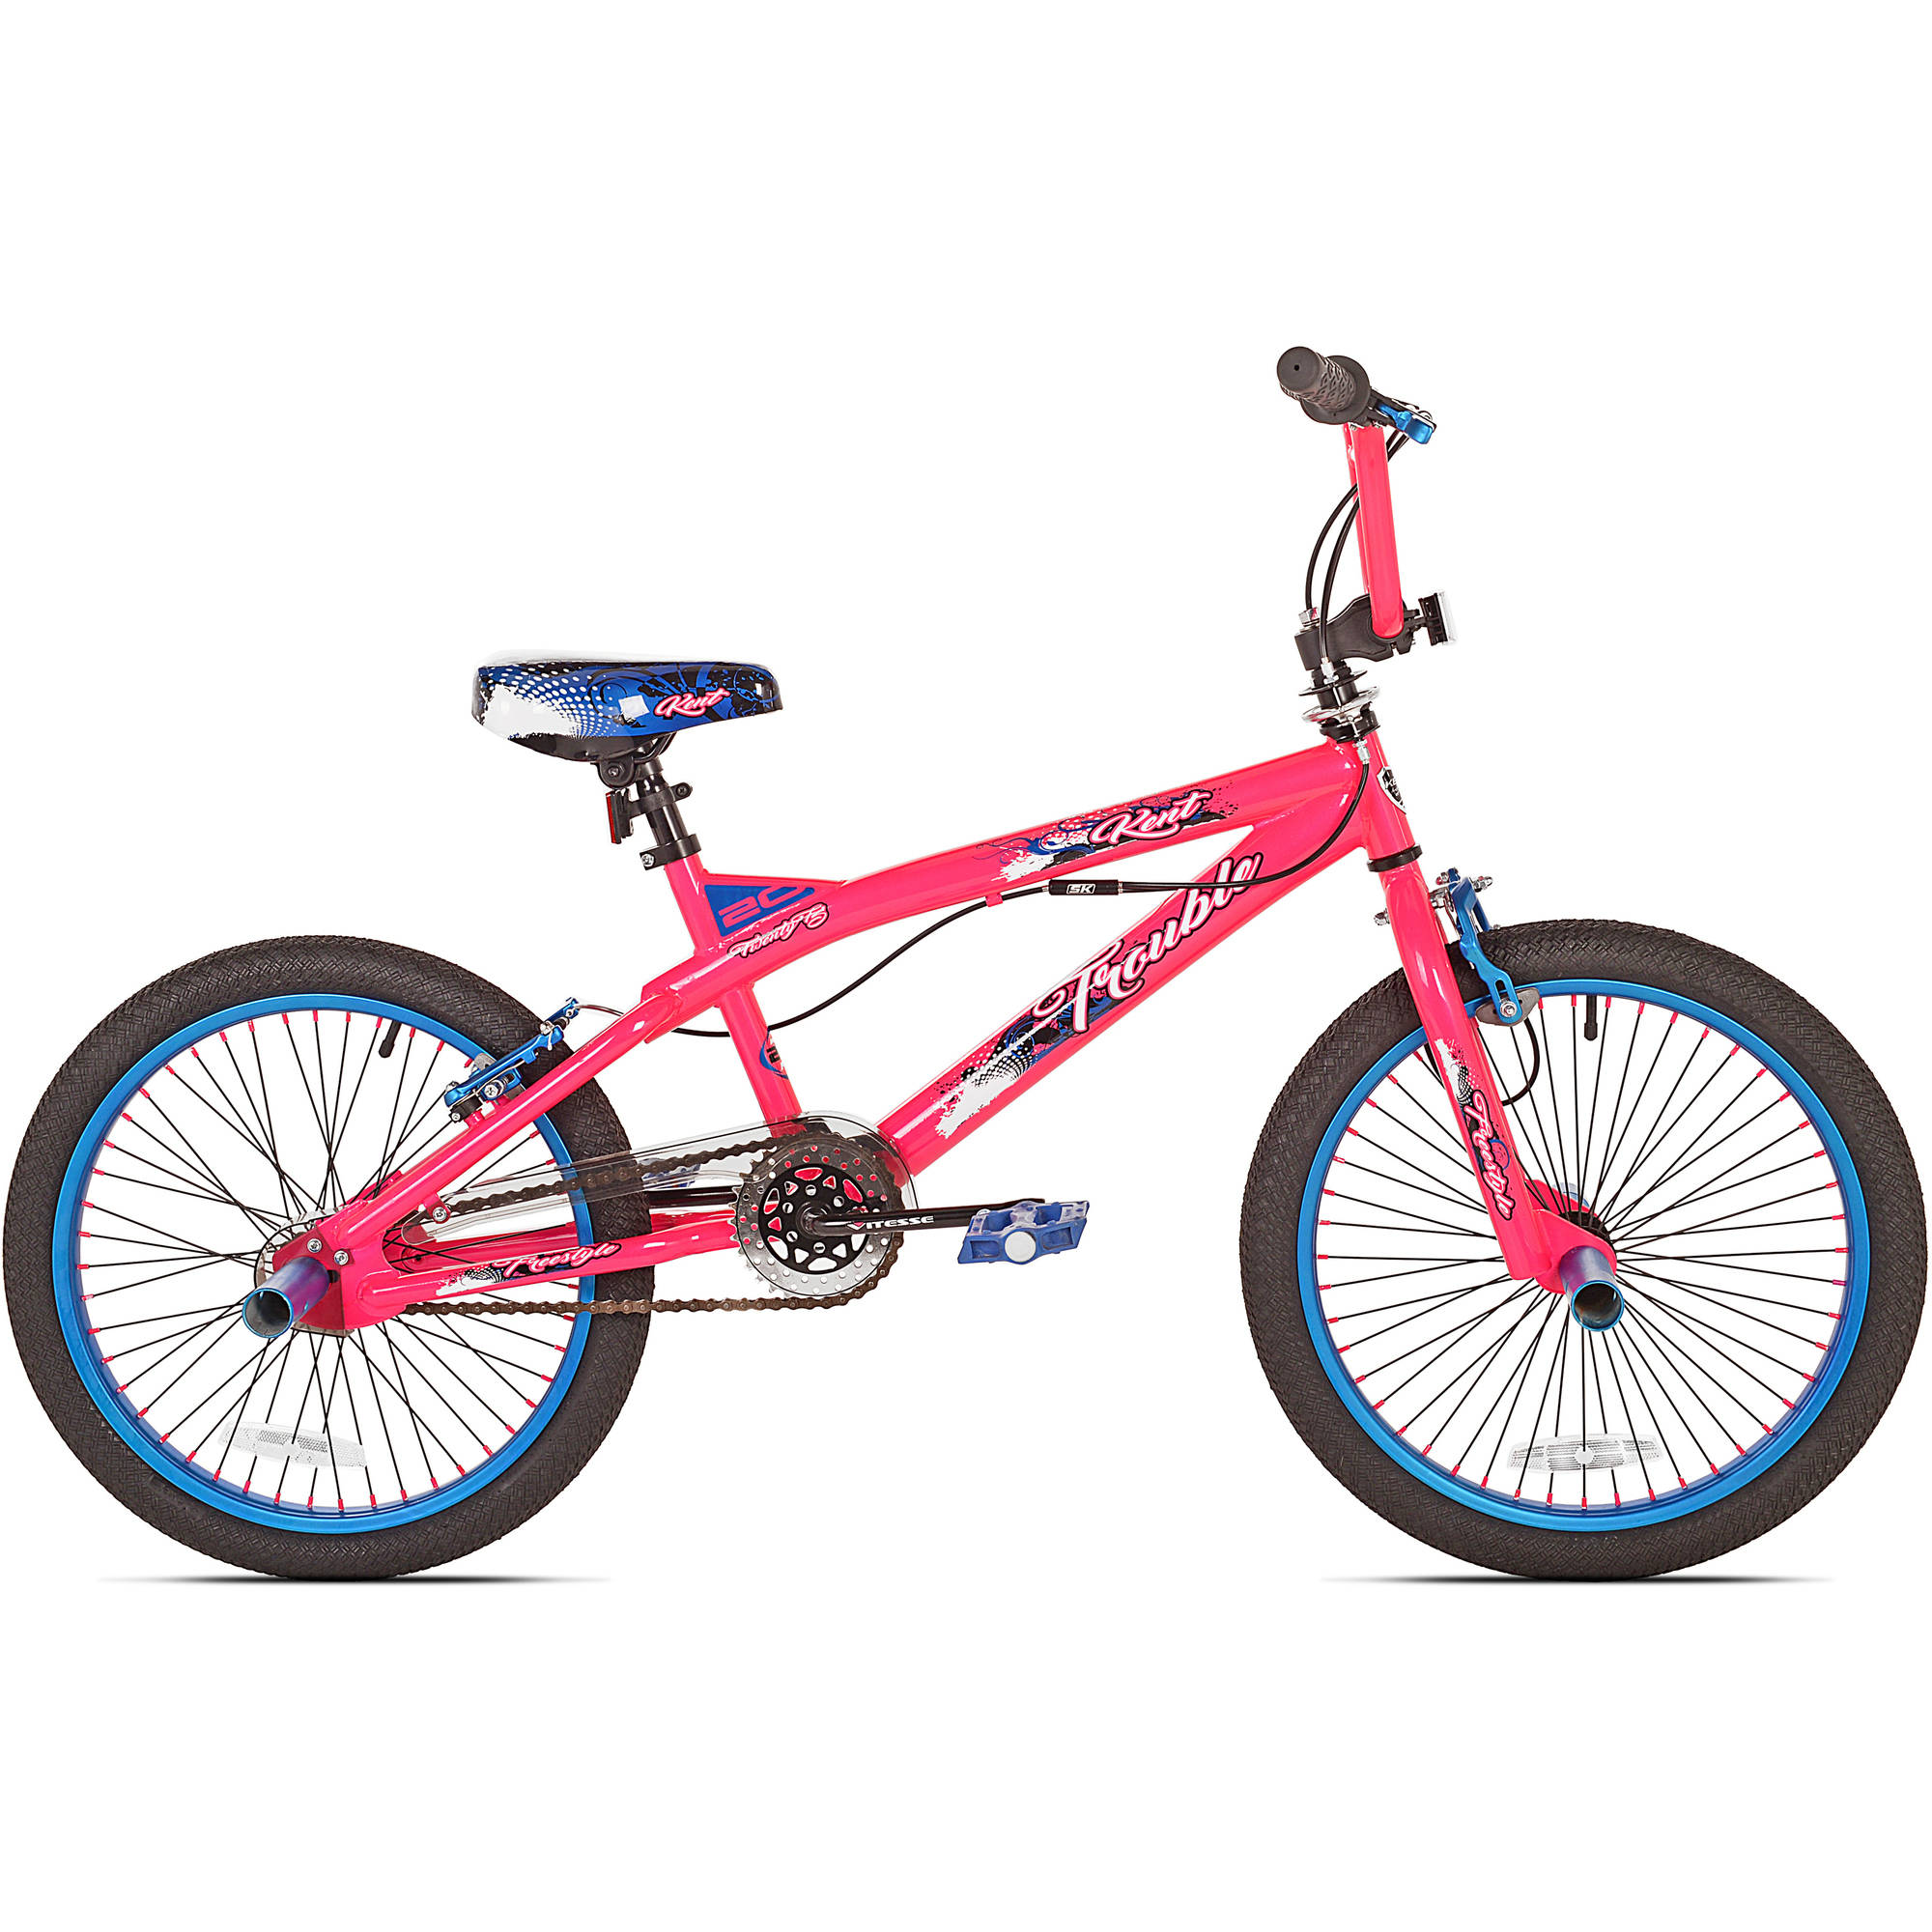 "20"" Kent Trouble Girls' Bike, Pink/Blue"